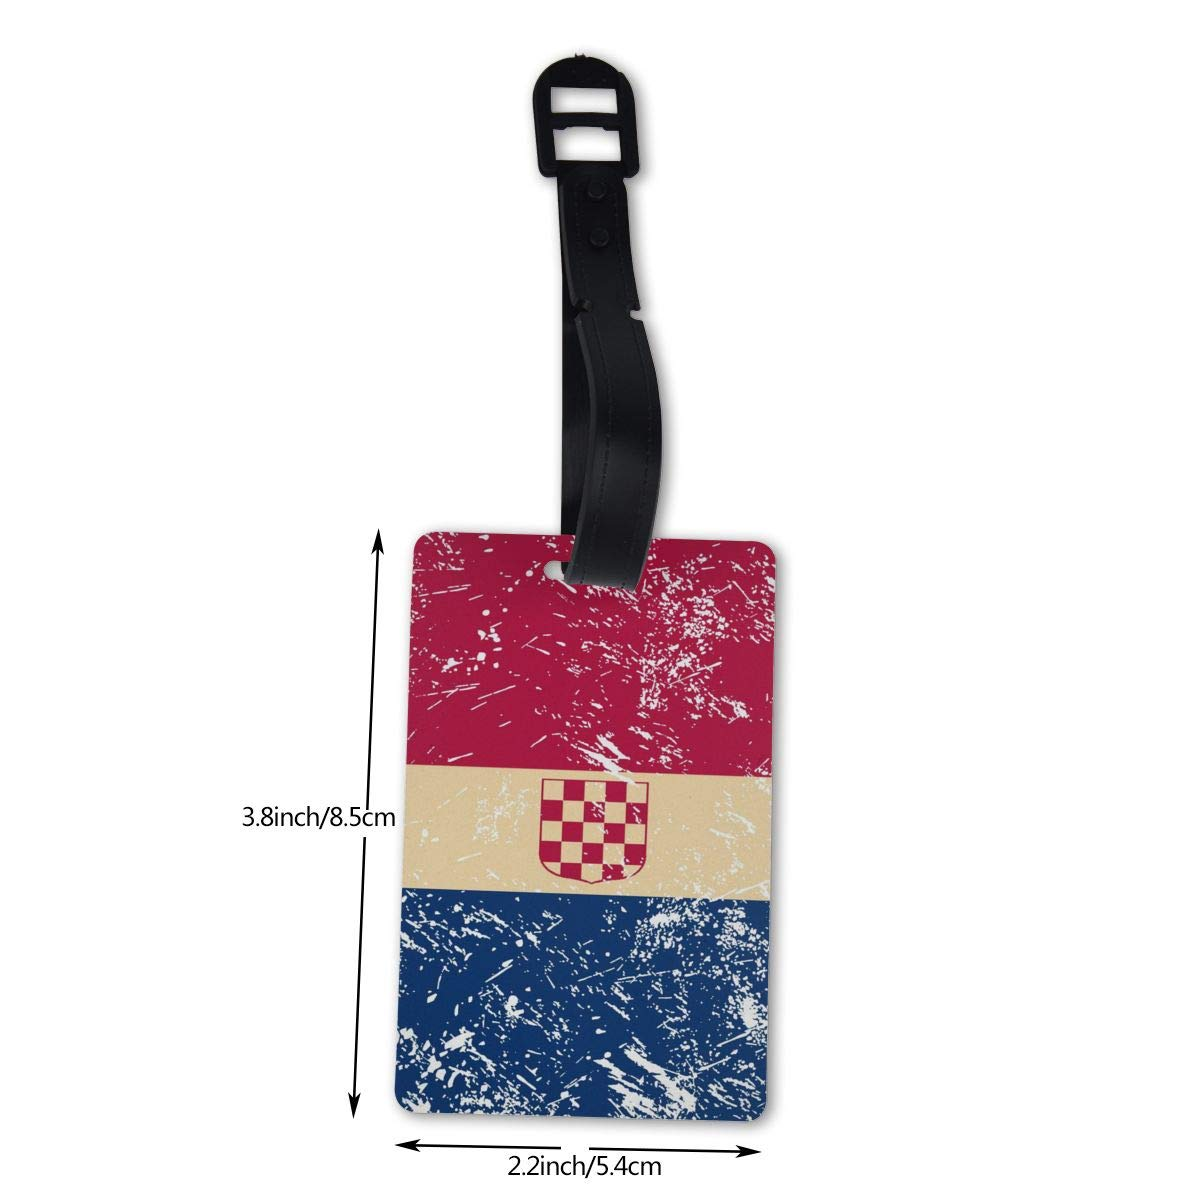 NB UUD Croatia Retro Flag Travel Luggage Tag Cool Employees Card Luggage Tag Holders Travel ID Identification Labels for Baggage Suitcases Bags